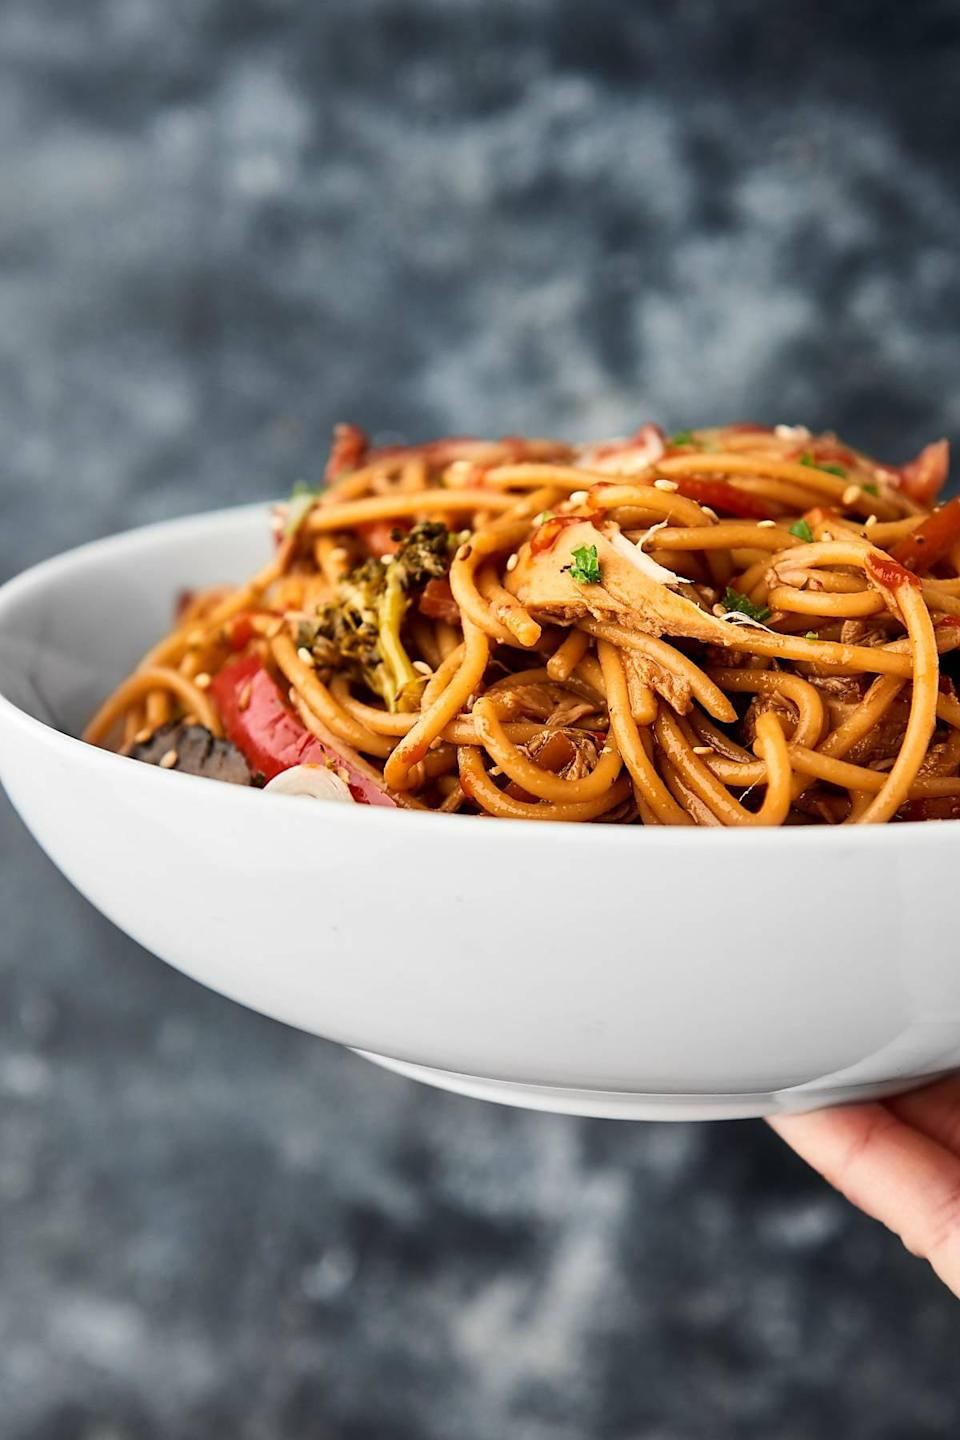 """<p>Craving takeout but not in the mood to go pick it up? This is the recipe for you! It's lighter and healthier than the traditional lo mein, but it still has all the great flavors. The best part about this recipe is that you can easily tweak how many people you want to feed, so if you're serving two, just note it in the recipe and watch as it updates the ingredinet list.</p> <p><strong>Get the recipe:</strong> <a href=""""https://showmetheyummy.com/slow-cooker-lo-mein-recipe/"""" class=""""link rapid-noclick-resp"""" rel=""""nofollow noopener"""" target=""""_blank"""" data-ylk=""""slk:slow-cooker lo mein"""">slow-cooker lo mein</a></p>"""